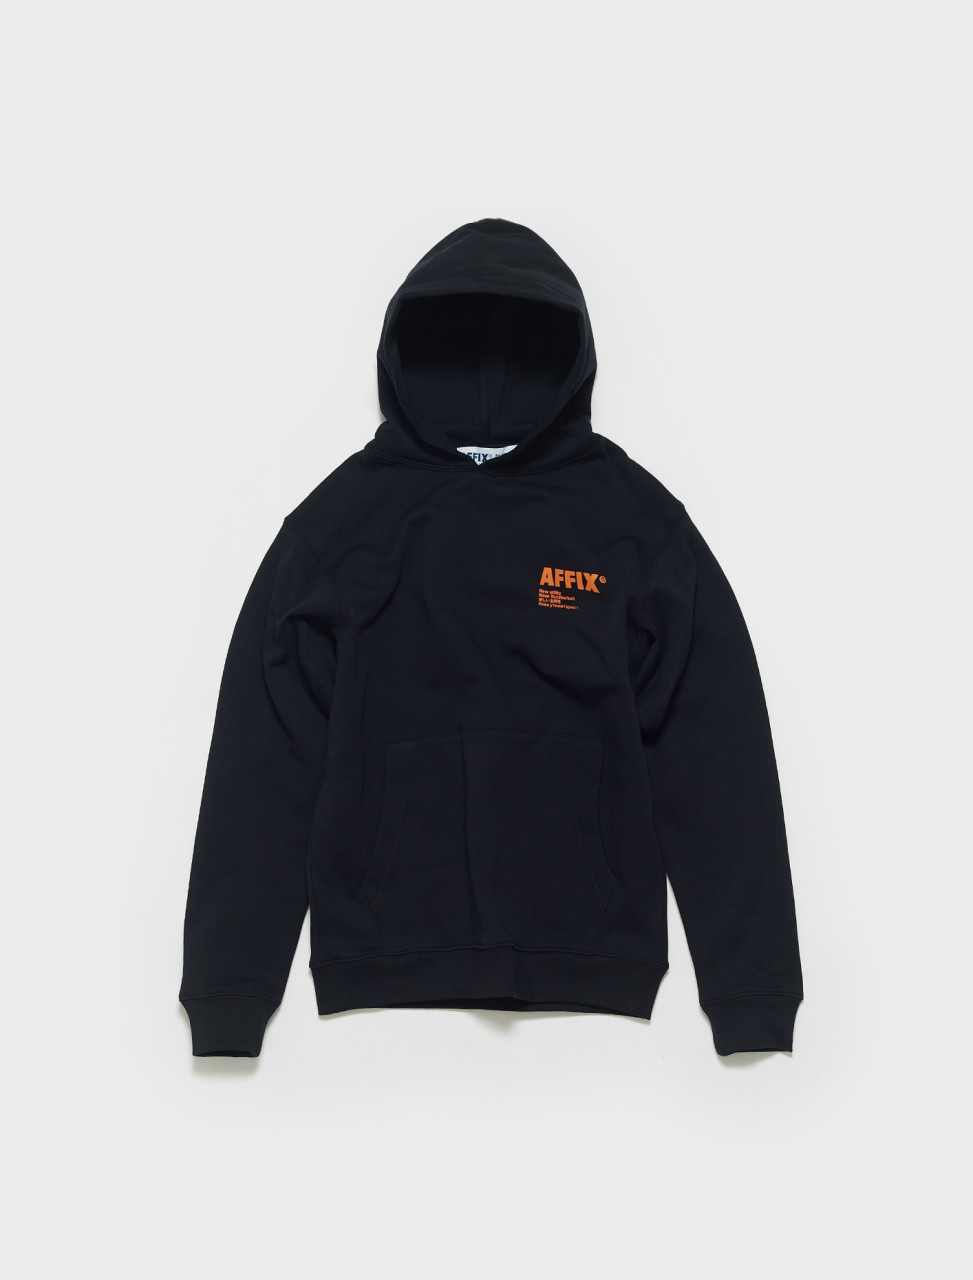 SS21HO04-Black & Orange AFFIX STANDARDISED LOGO HOODIE IN BLACK ORANGE